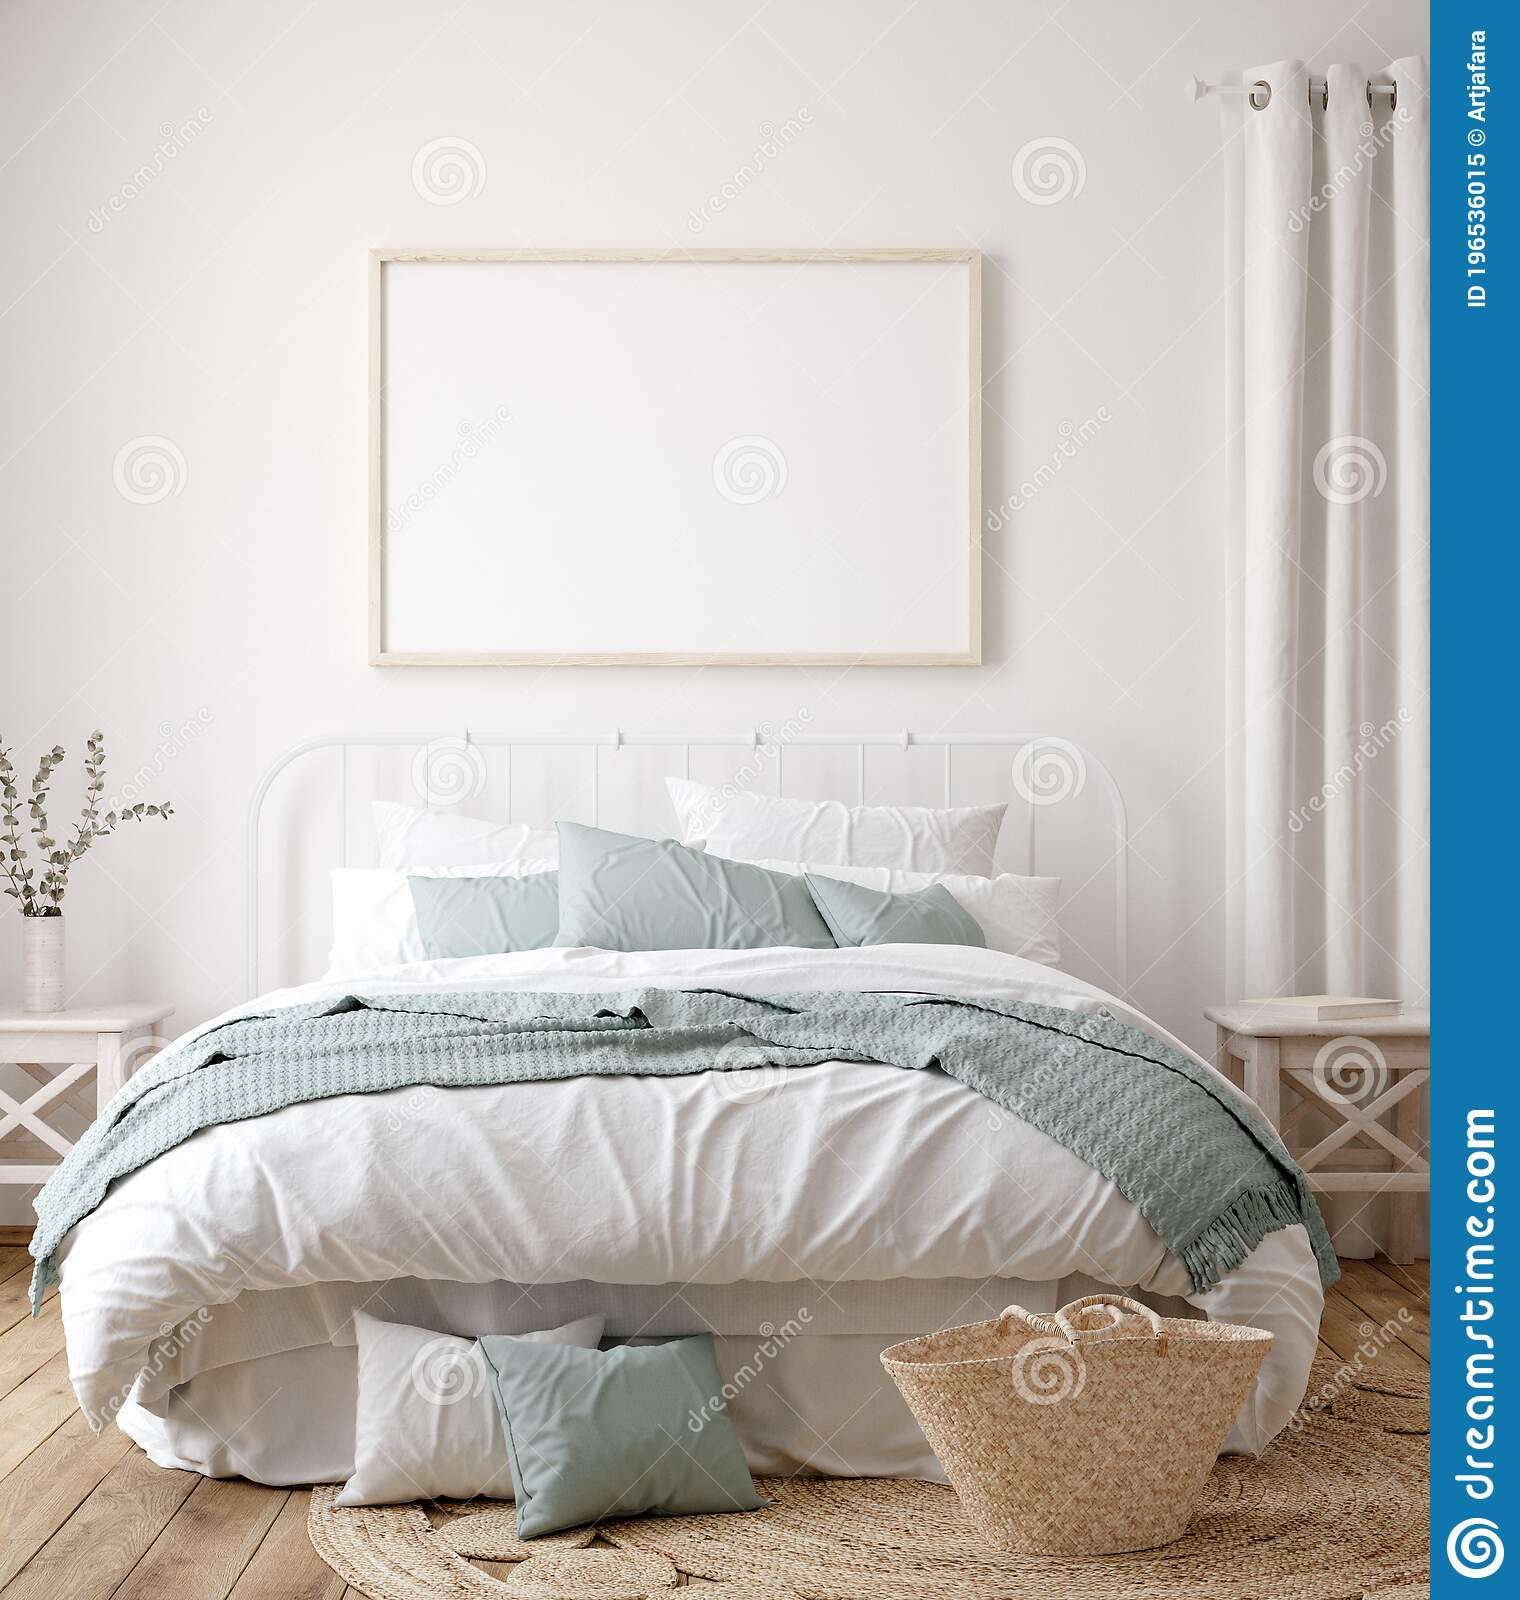 Frame Mock Up In Farmhouse Bedroom Interior Stock Illustration Illustration Of Decor Frame 196536015